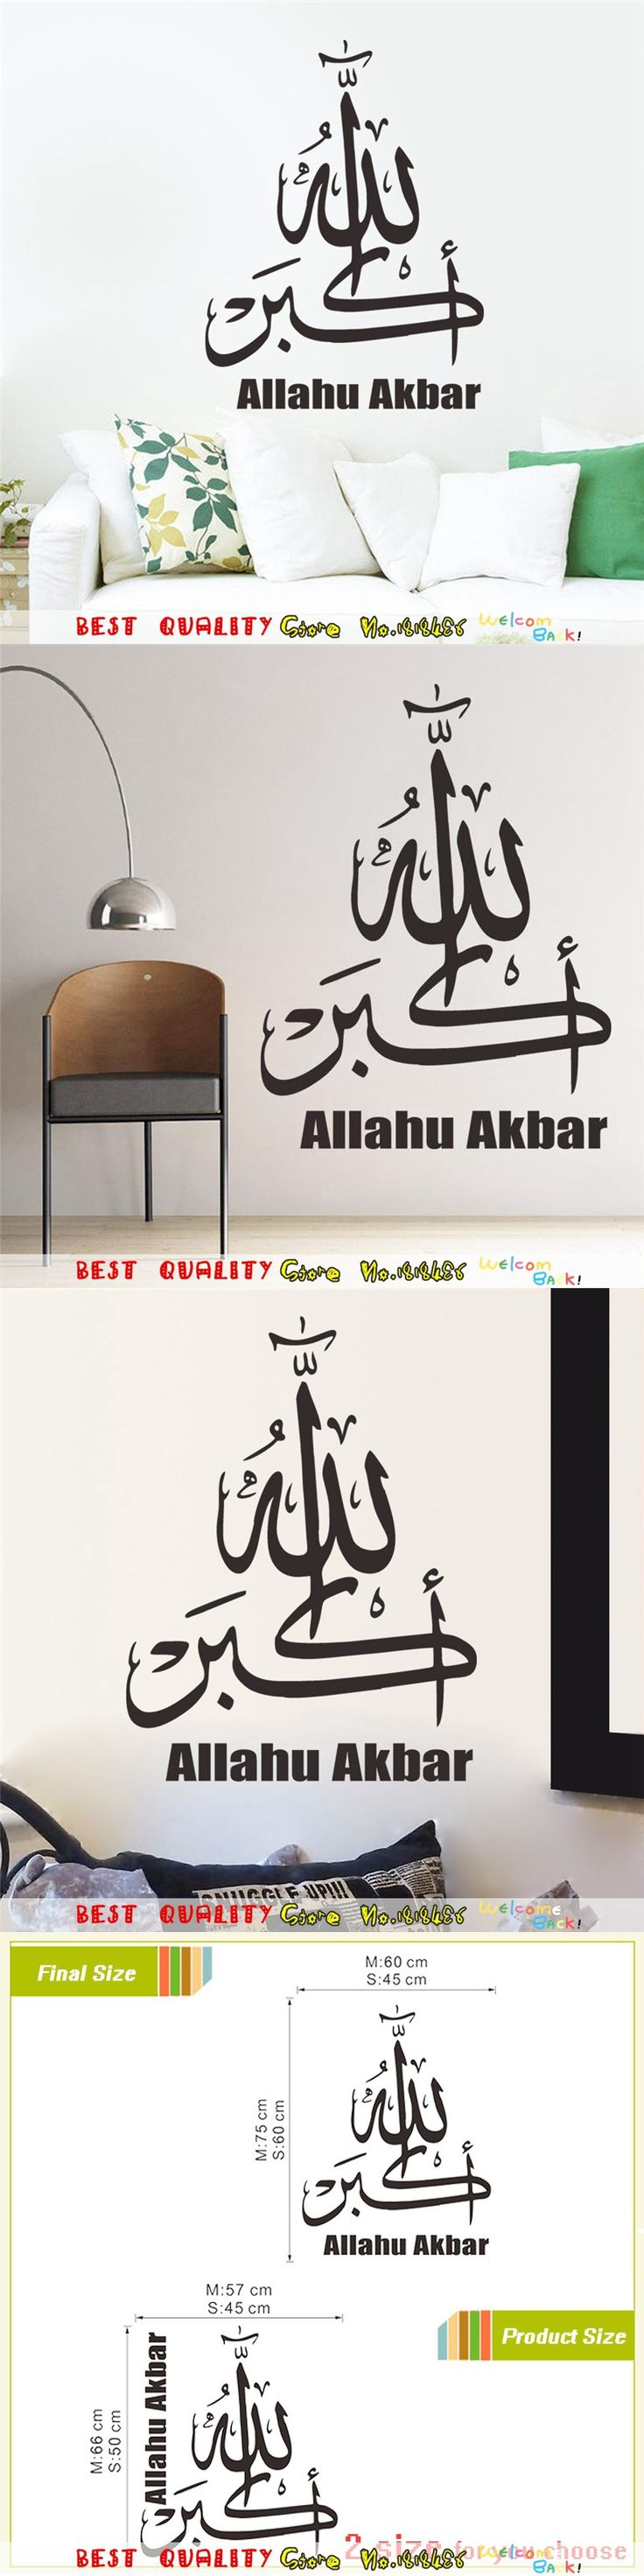 Allahu Akbar Islamic Wall Stickers Quotes Paper Craft Wall Decals Muslim Arabic Wallpaper Home Decoration Mosque God Allah Quran $4.41